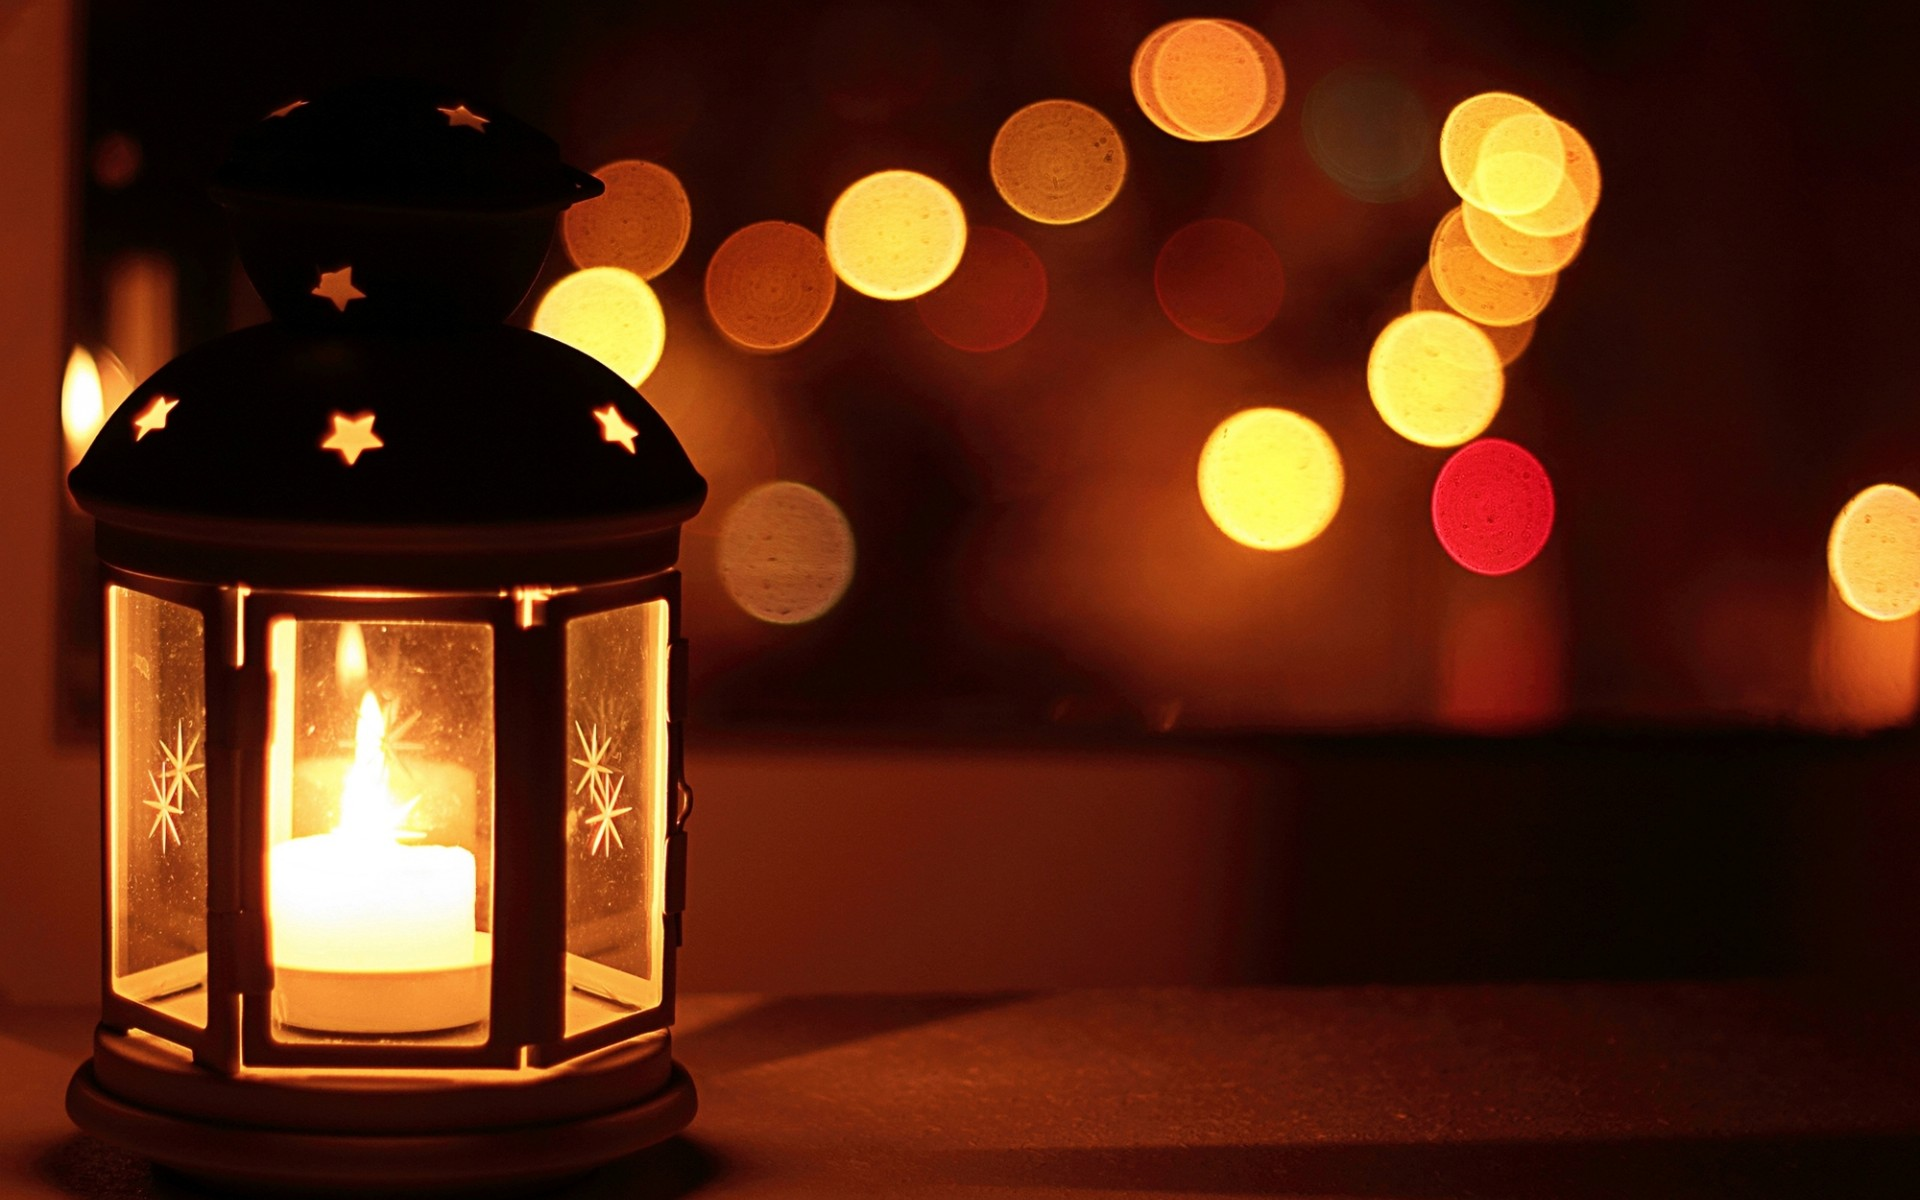 lantern wallpaper, Ikea, flashlight, candle, light, window, evening, night